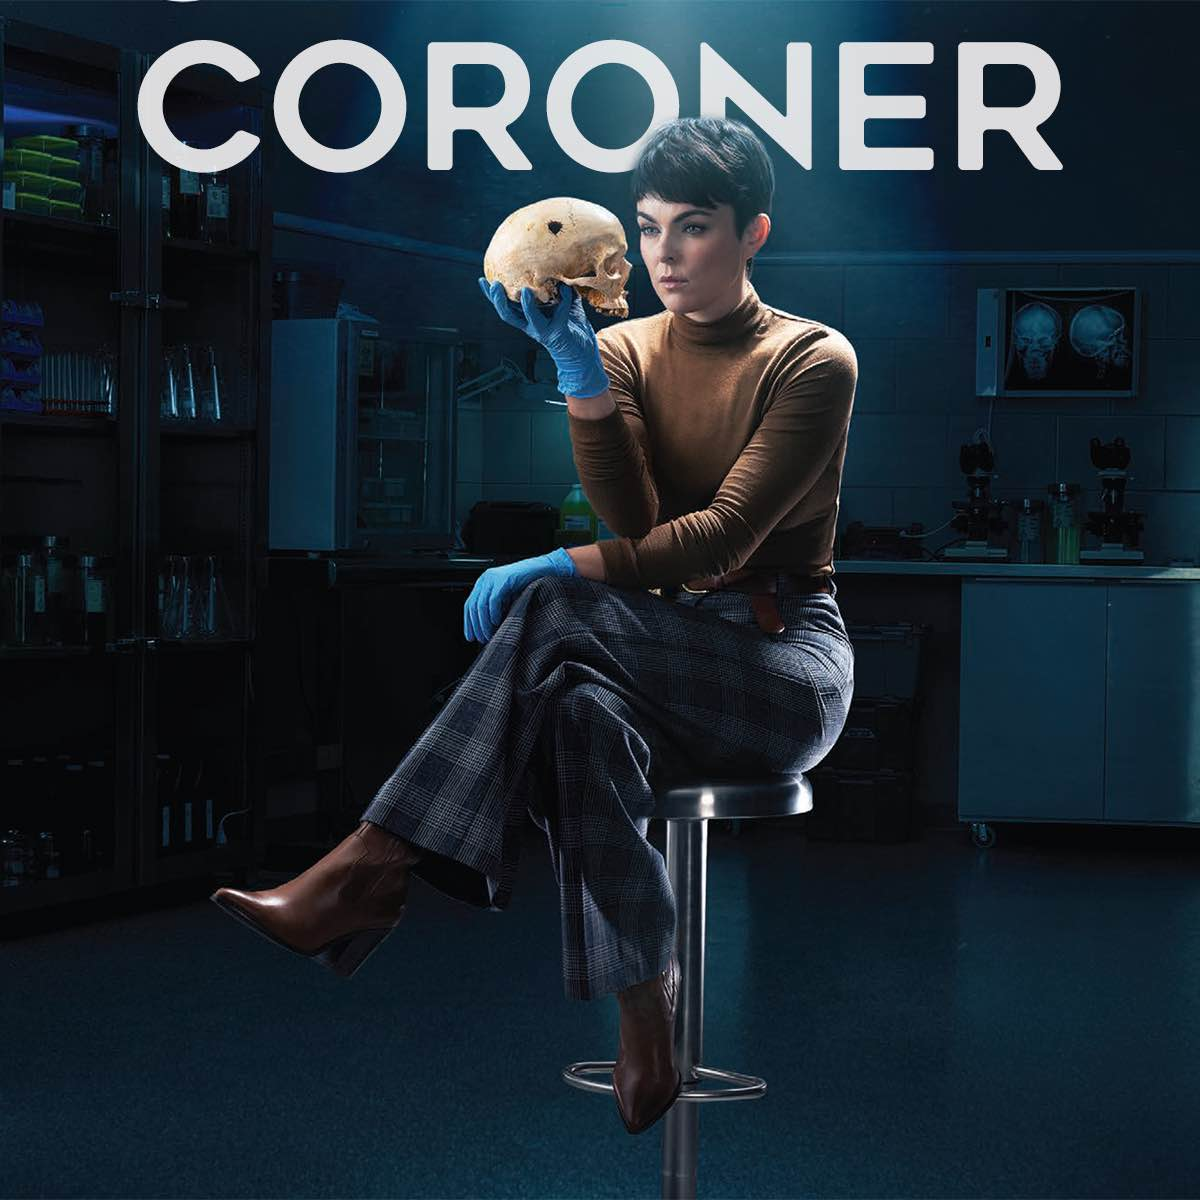 'Coroner Garners Large Reach on Its Premiere' core news picture